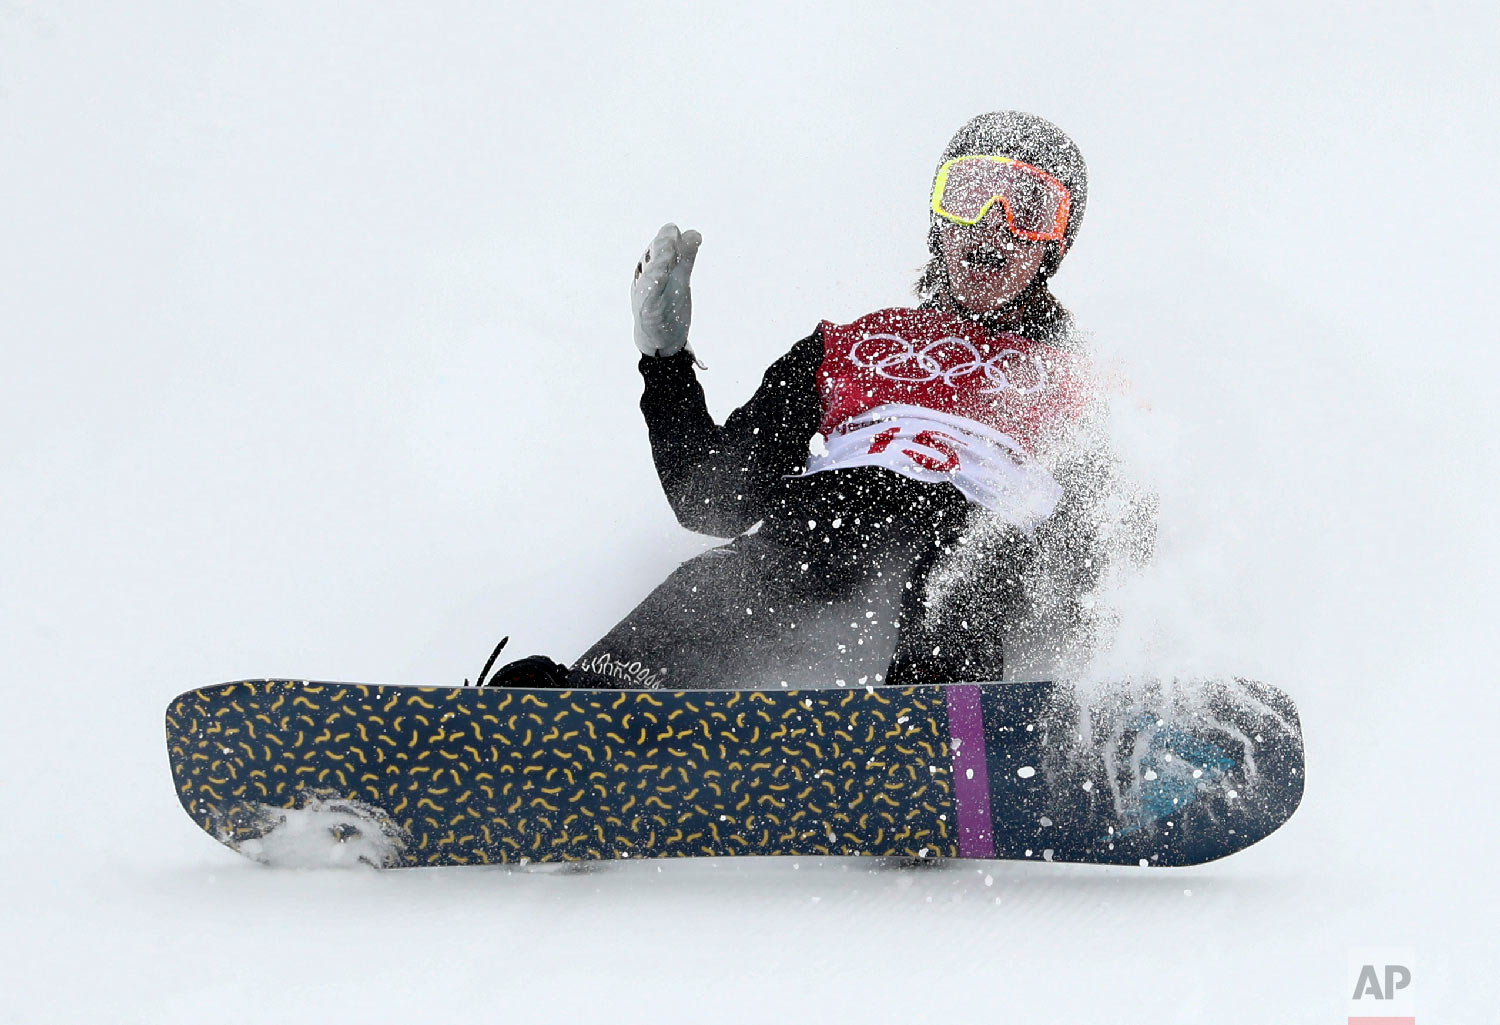 Knight Carlos Garcia, of New Zealand, crashes during the men's Big Air snowboard competition at the 2018 Winter Olympics in Pyeongchang, South Korea, Saturday, Feb. 24, 2018. (AP Photo/Matthias Schrader)